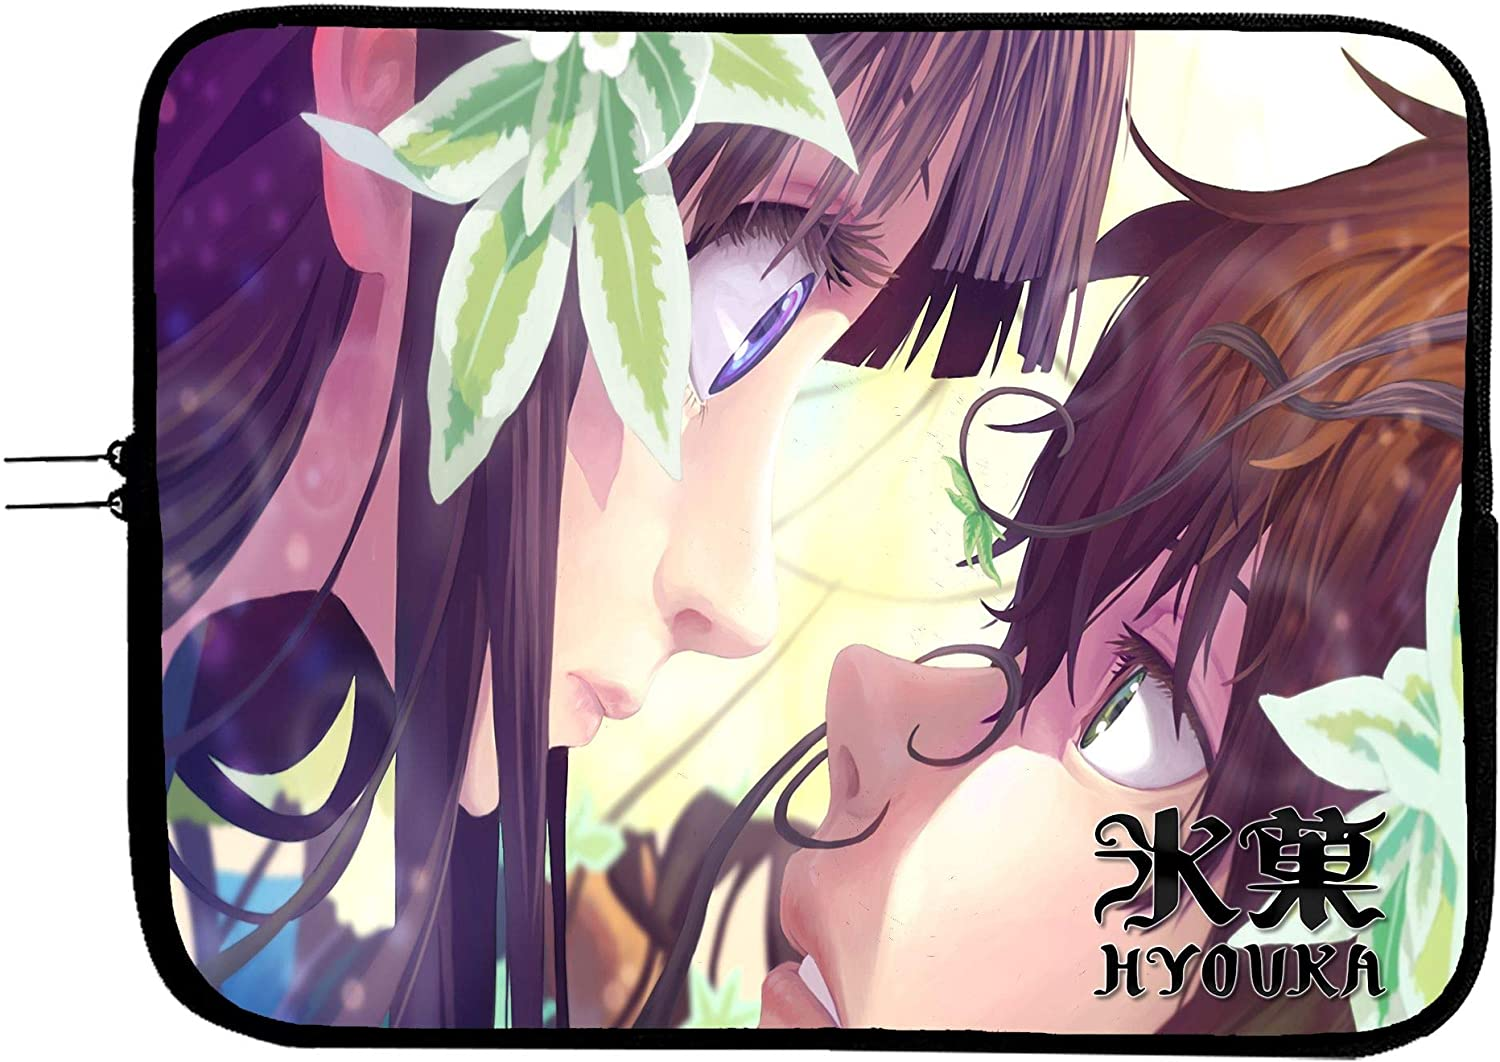 Brand3 Anime Hyouka Laptop Sleeve Bag Notebook Case 13 13.3 Anime Computer Bag Laptop//Tablet Water Repellent Neoprene Cushioned Case